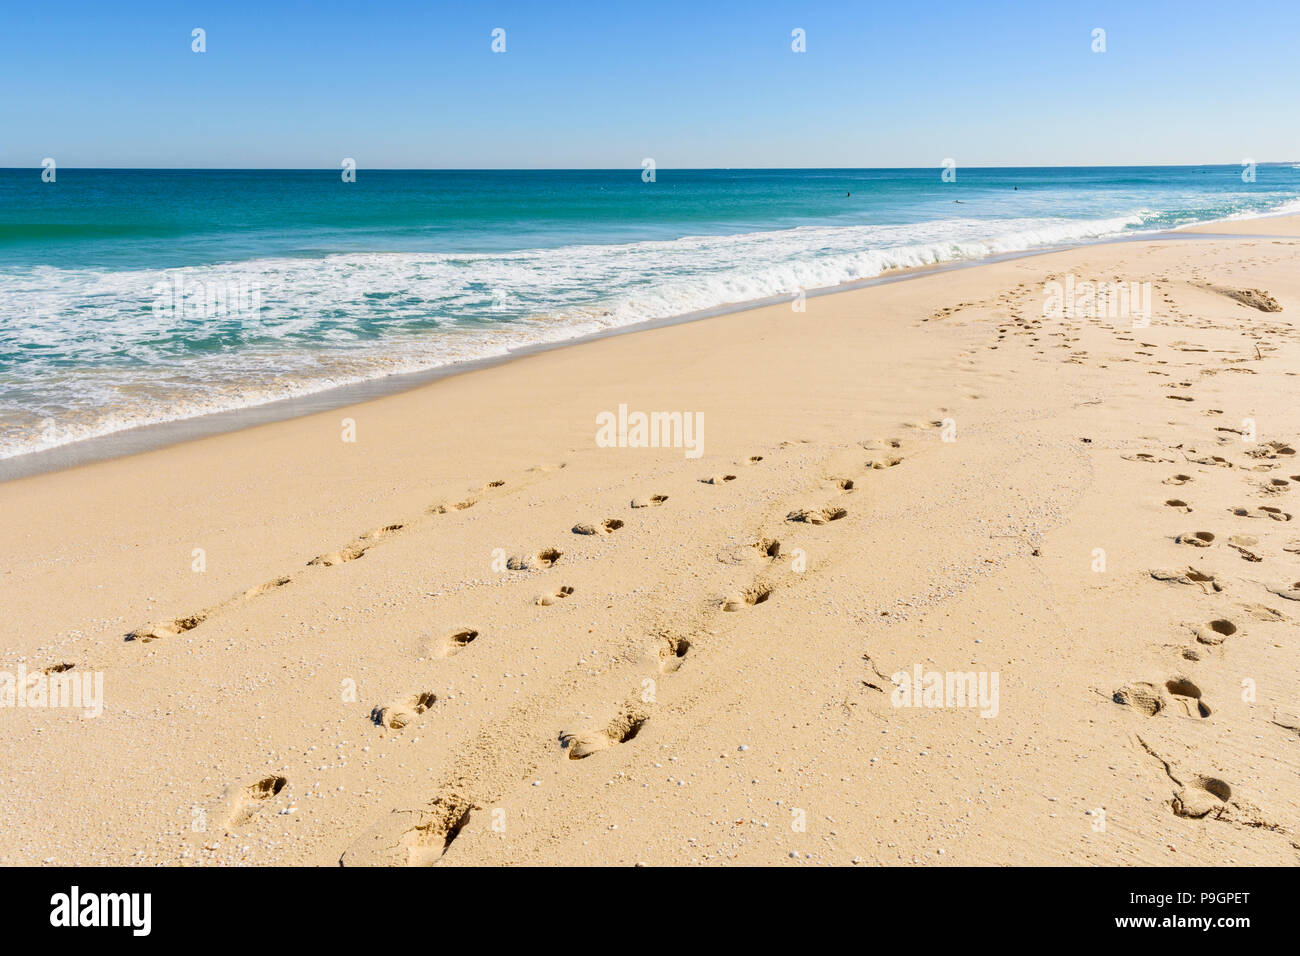 Footprints in the sand at Scarborough Beach, Perth, Western Australia - Stock Image